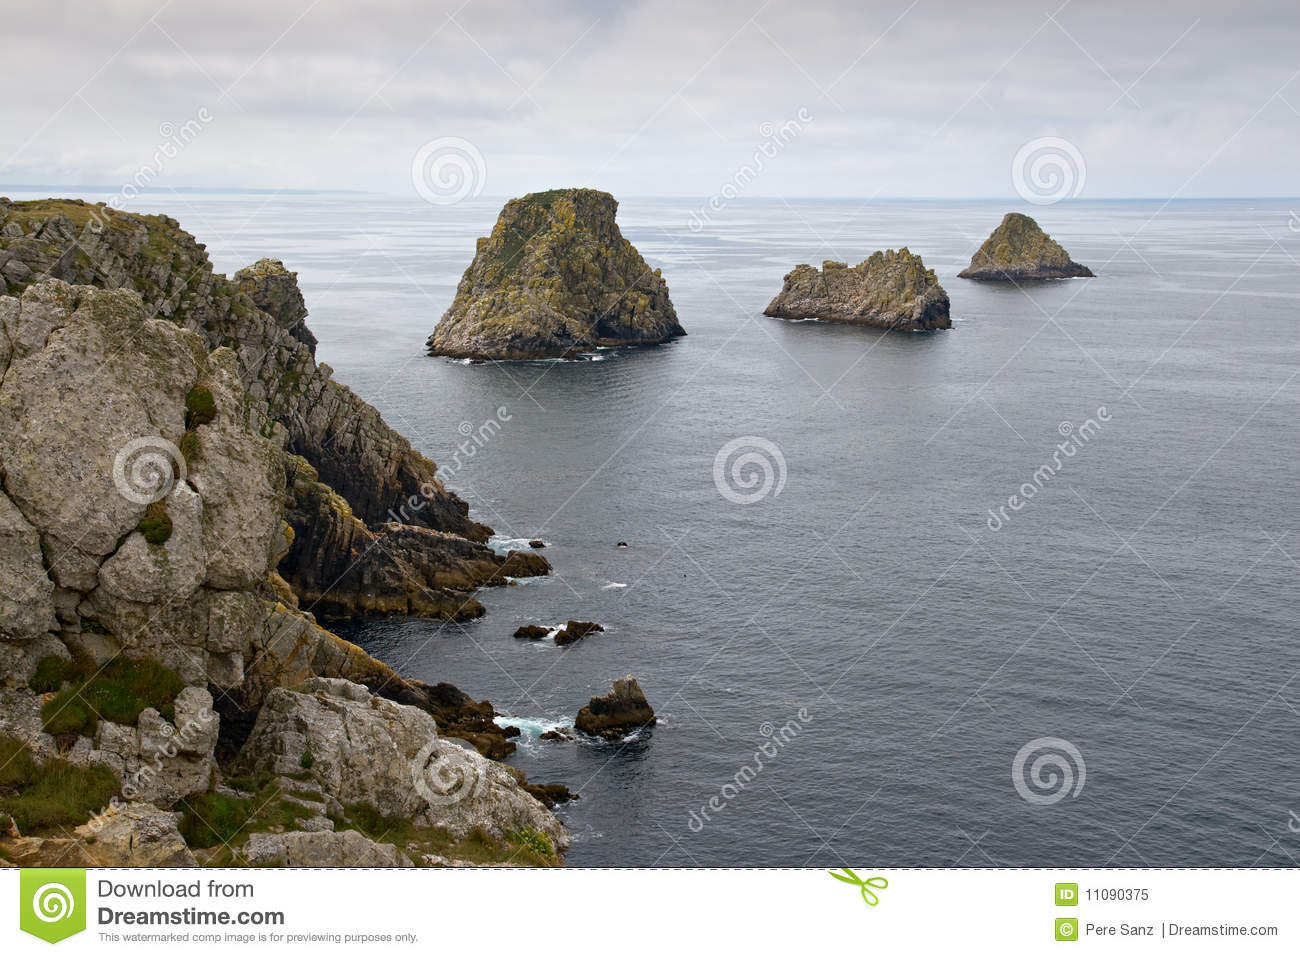 Cliffs in the Pointe du Penhir, Brittany, France